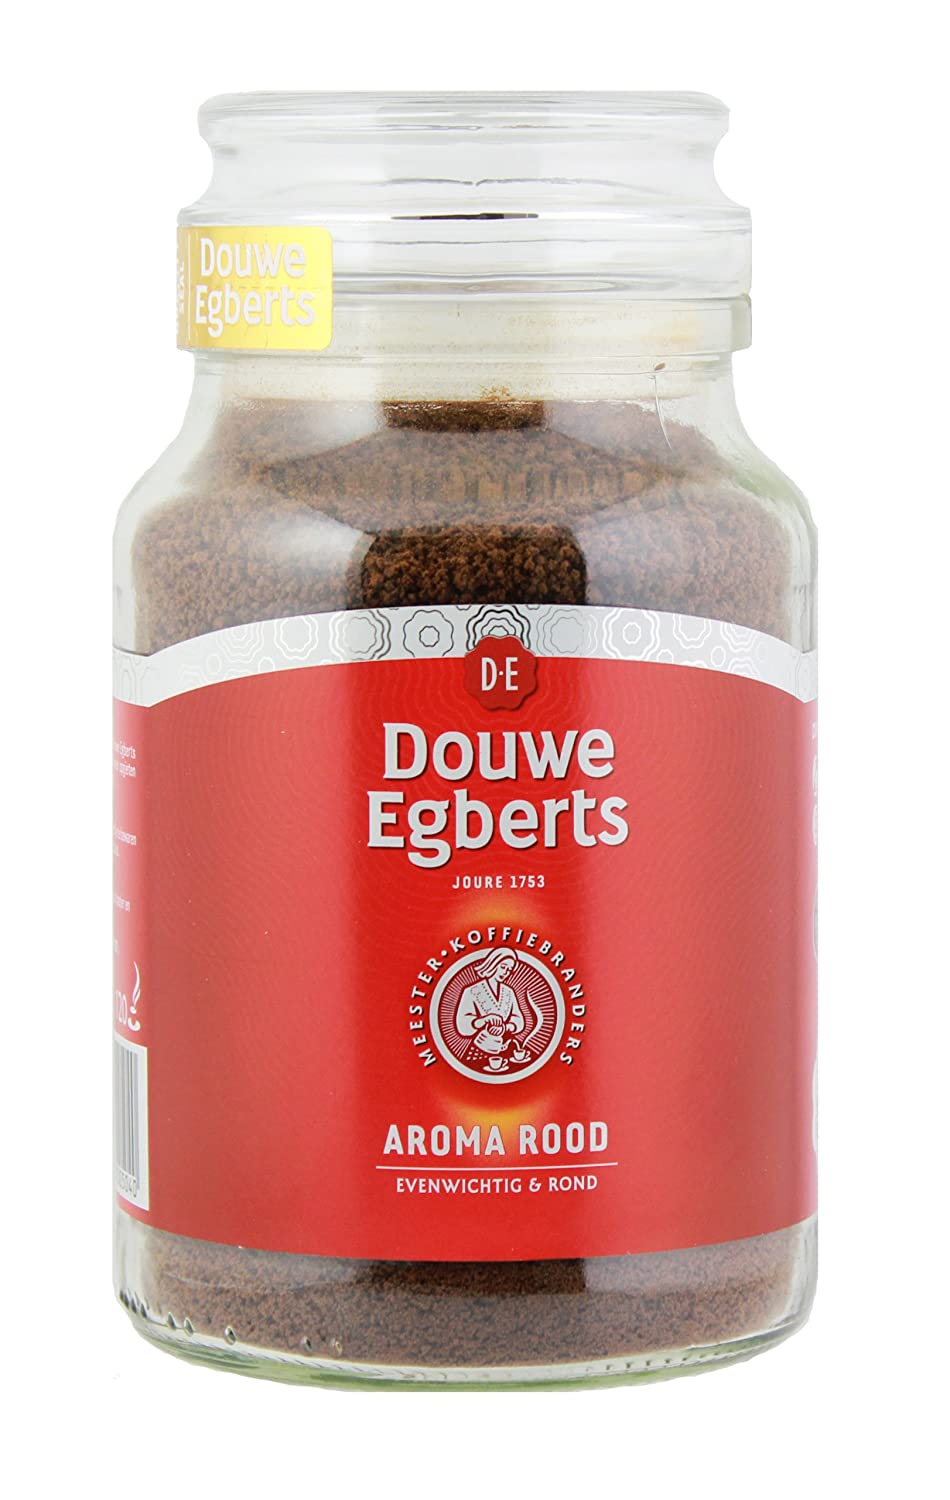 Douwe Egberts Aroma Rood Instant Coffee,200 gram Jars (Pack of 2)